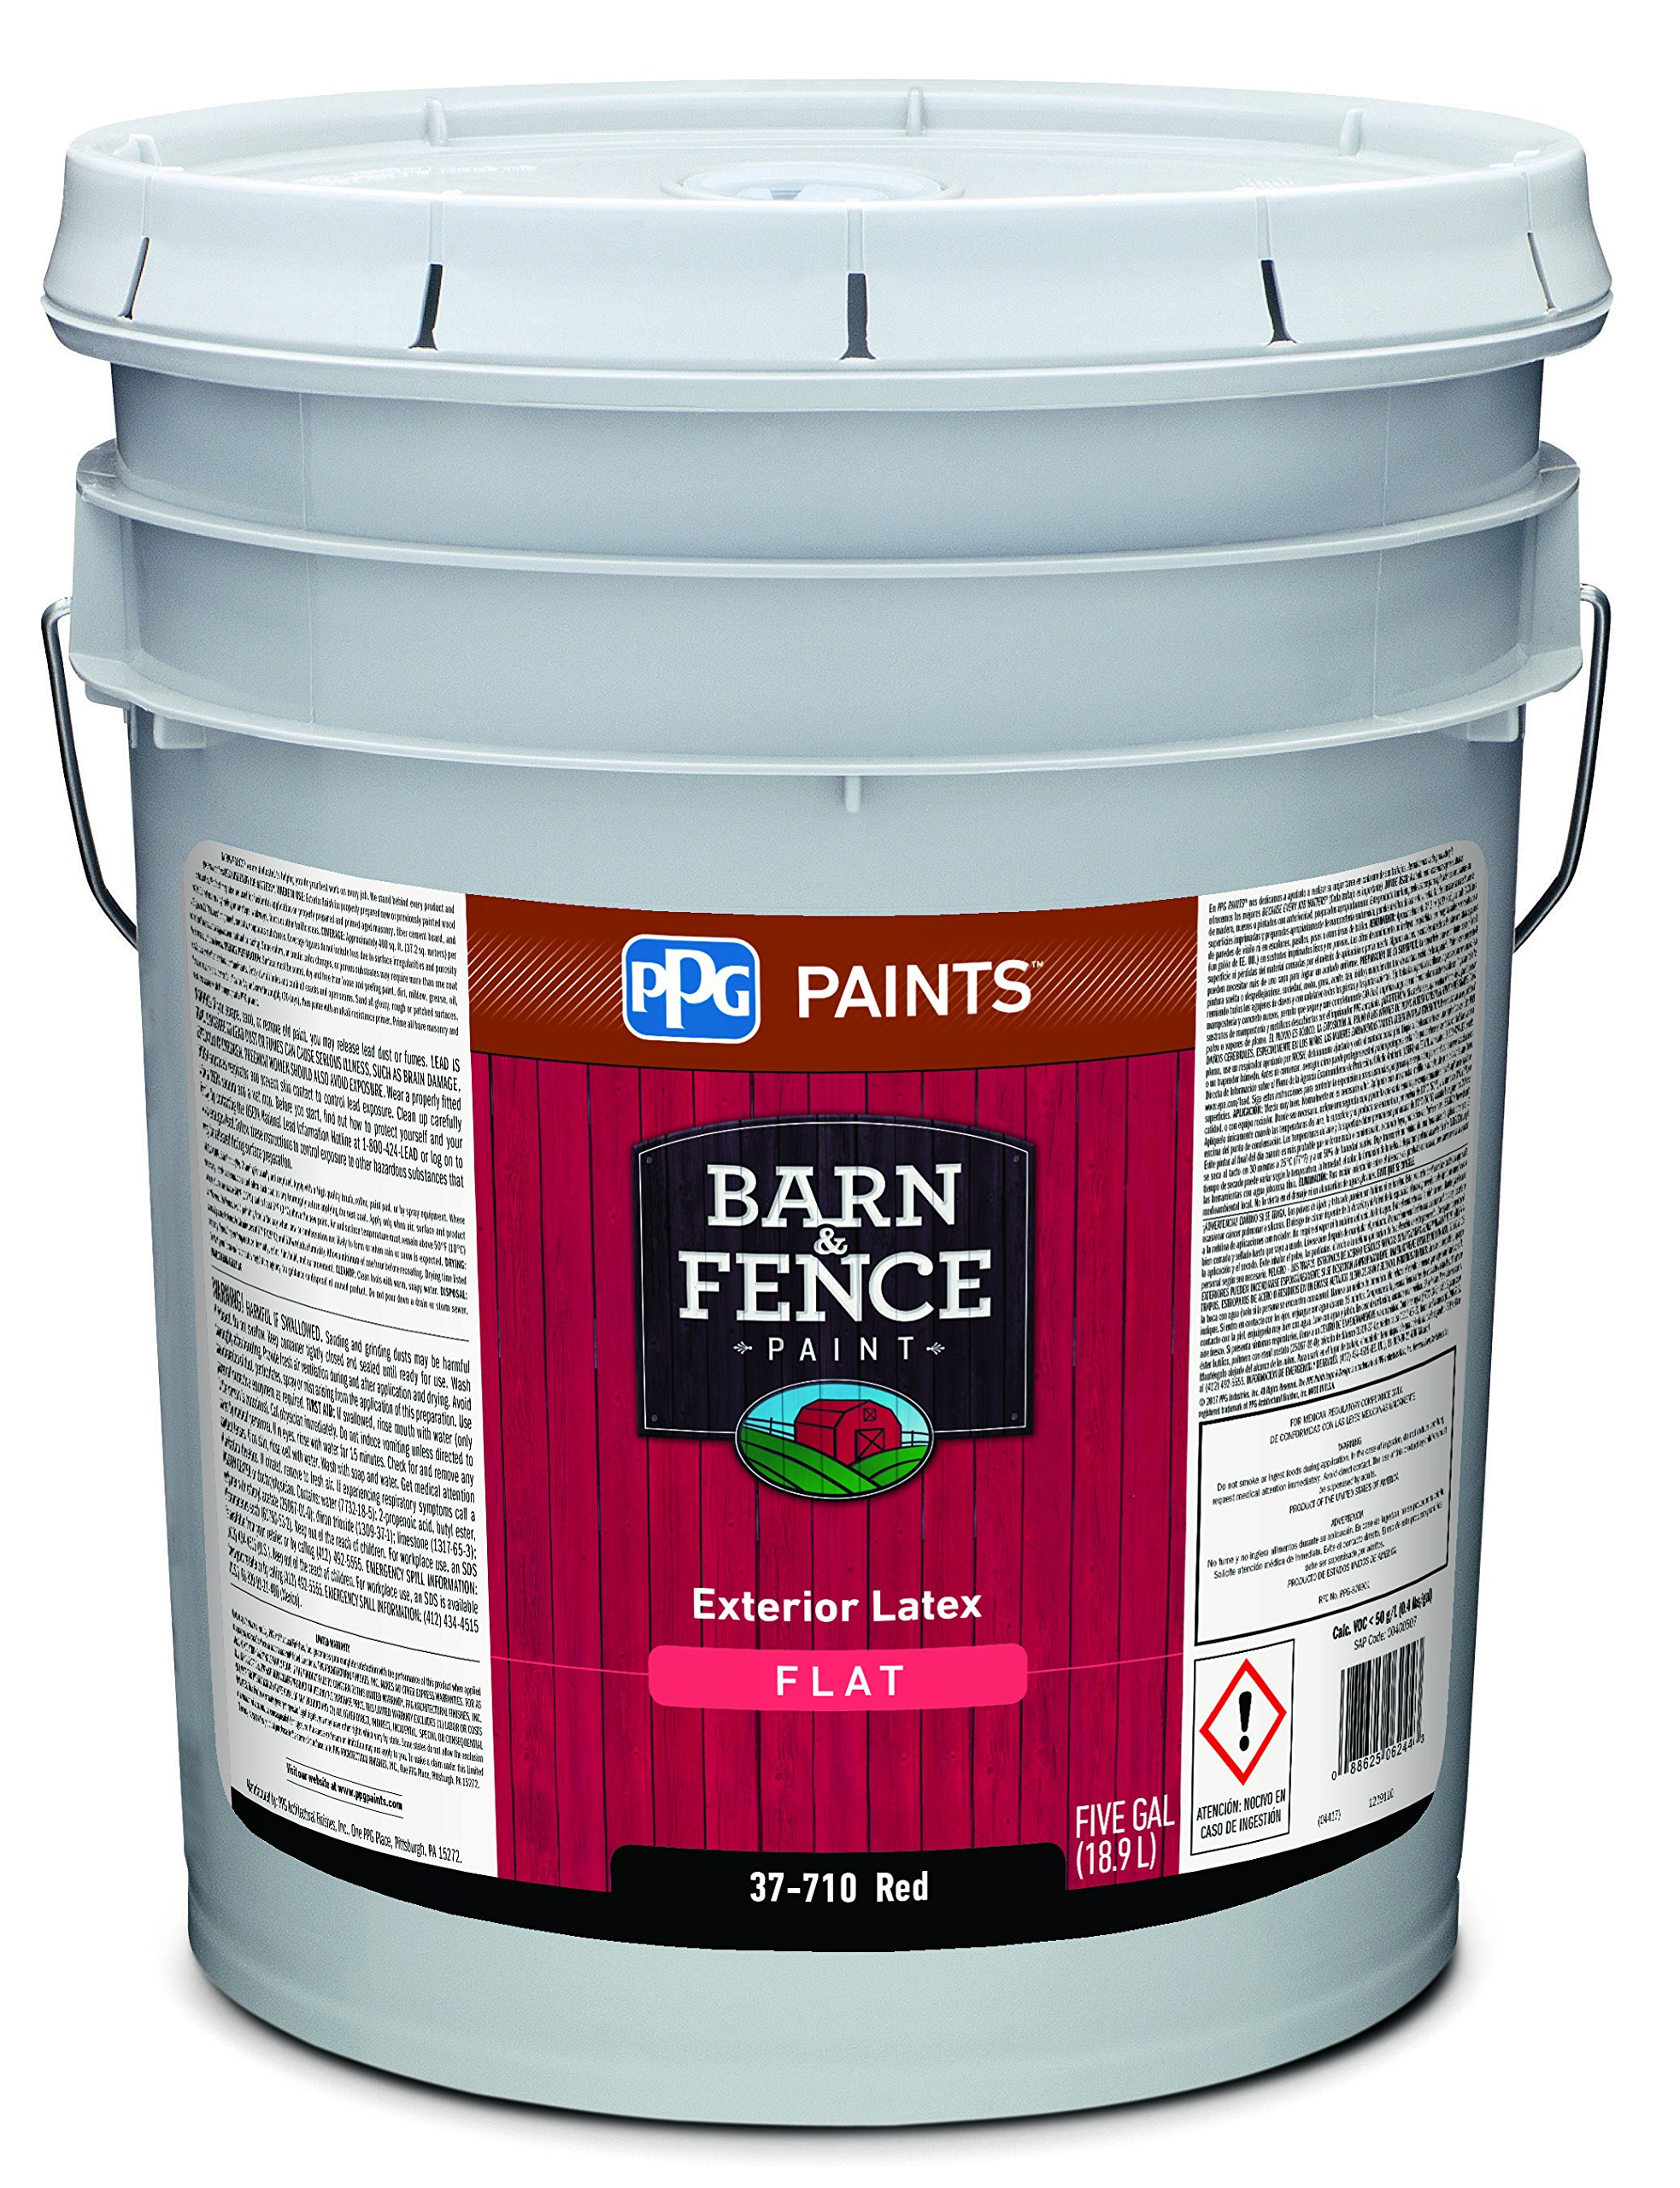 37-710/05 Latex Paint, Flat, 5 gal, Barn and Fence, Exterior Paint for Barn  and Fence, Red